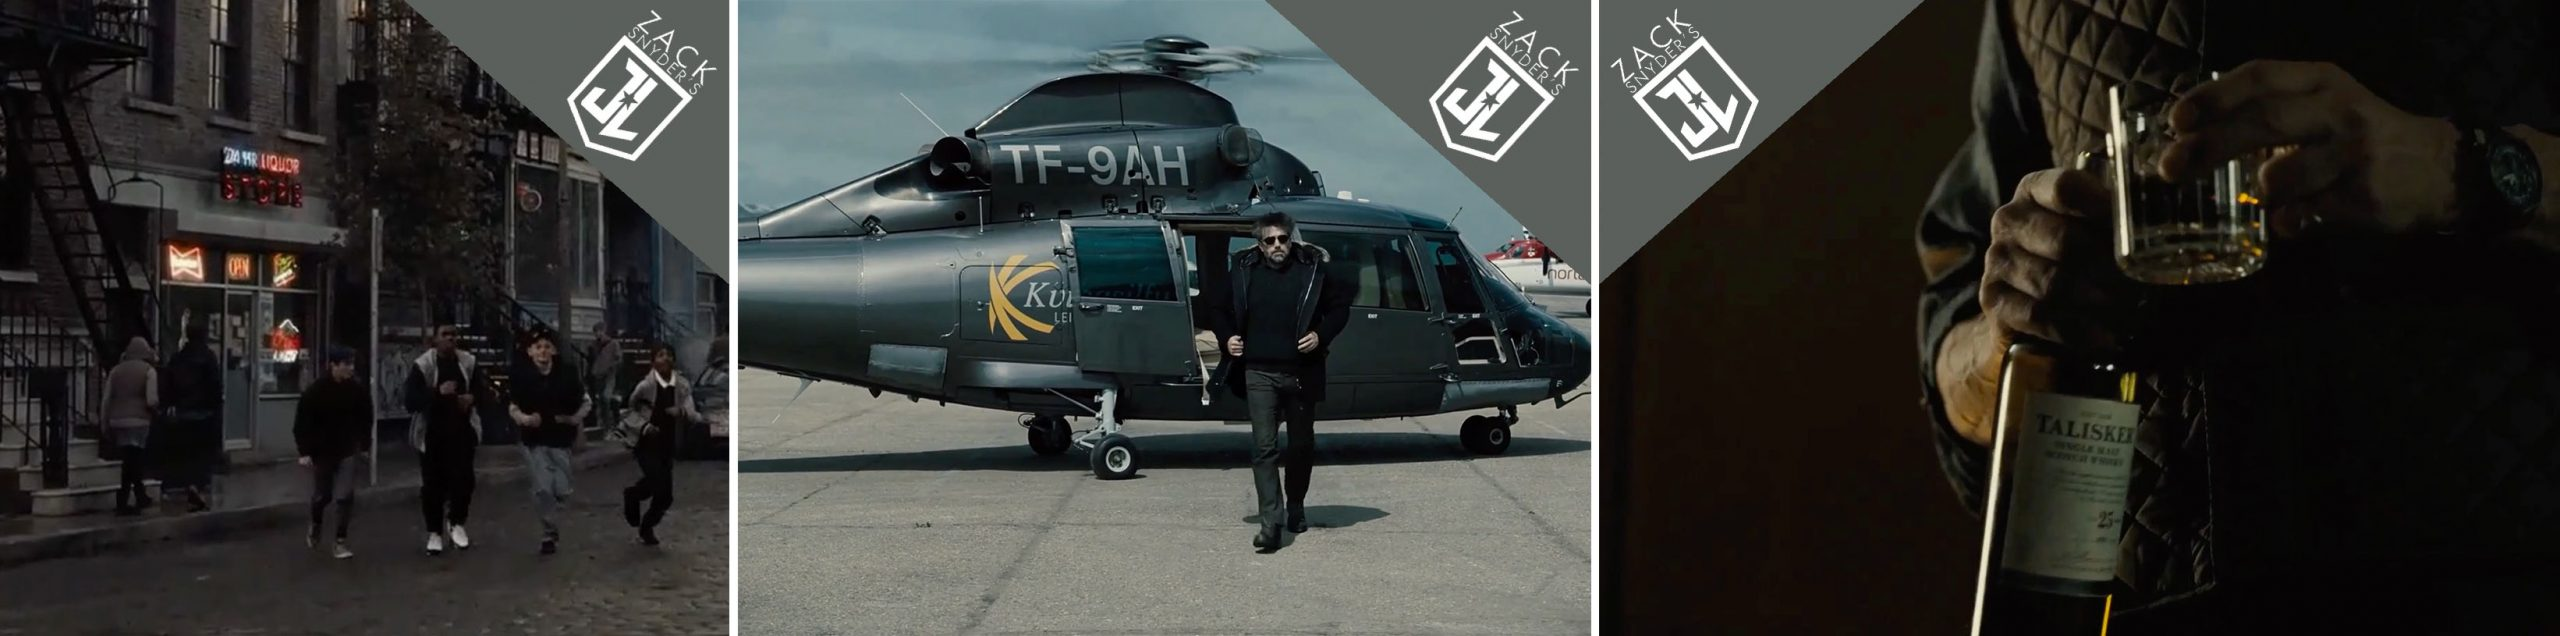 Budweiser, Coors, Eurocopter and Talisker product placements in Zack Snyder's Justice League